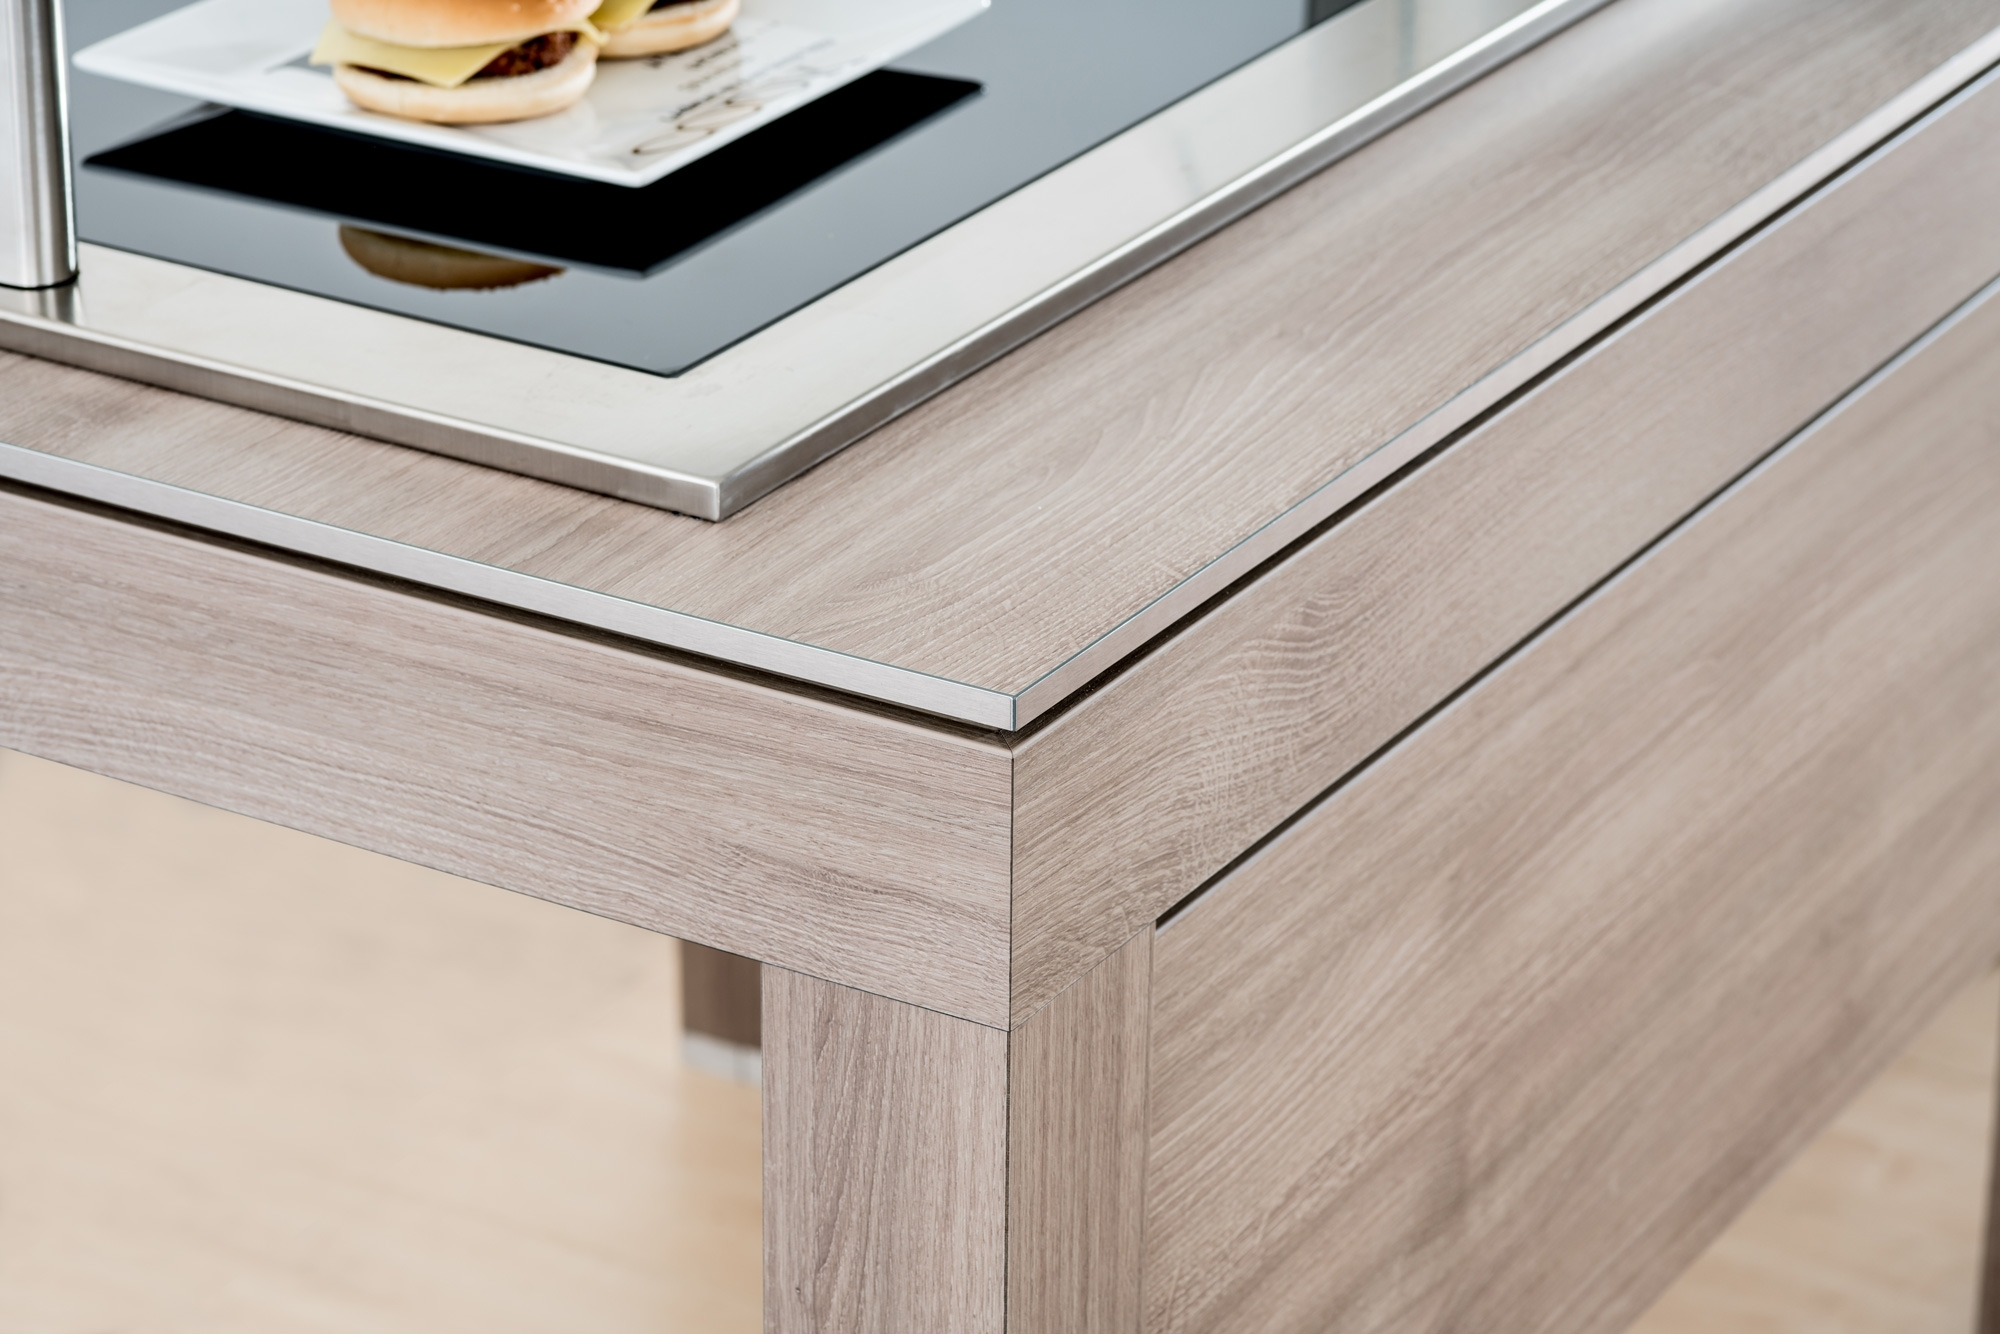 Scs Dining Furniture Within Well Liked Domino – Scs Srl – Mobili Cassa E Arredi Per La Grande Distribuzione (View 19 of 25)